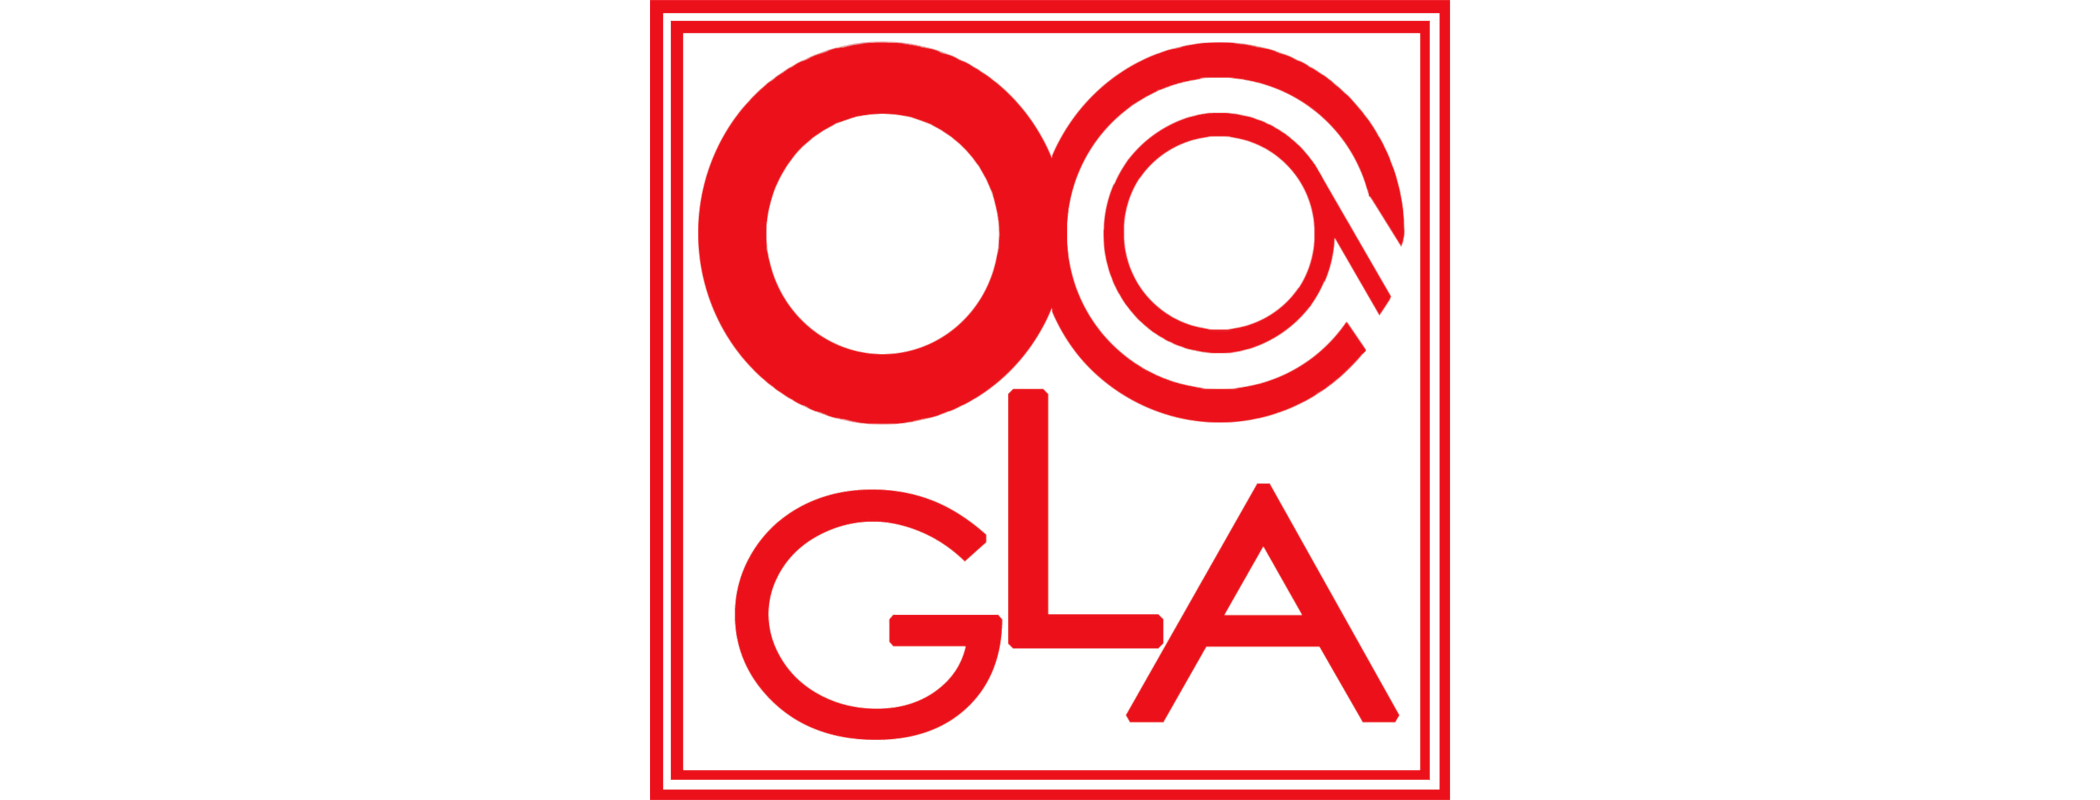 - OCAGreater Los Angeles1145 Wilshire Blvd., Ste. 103,Los Angeles 90017oca-gla.org